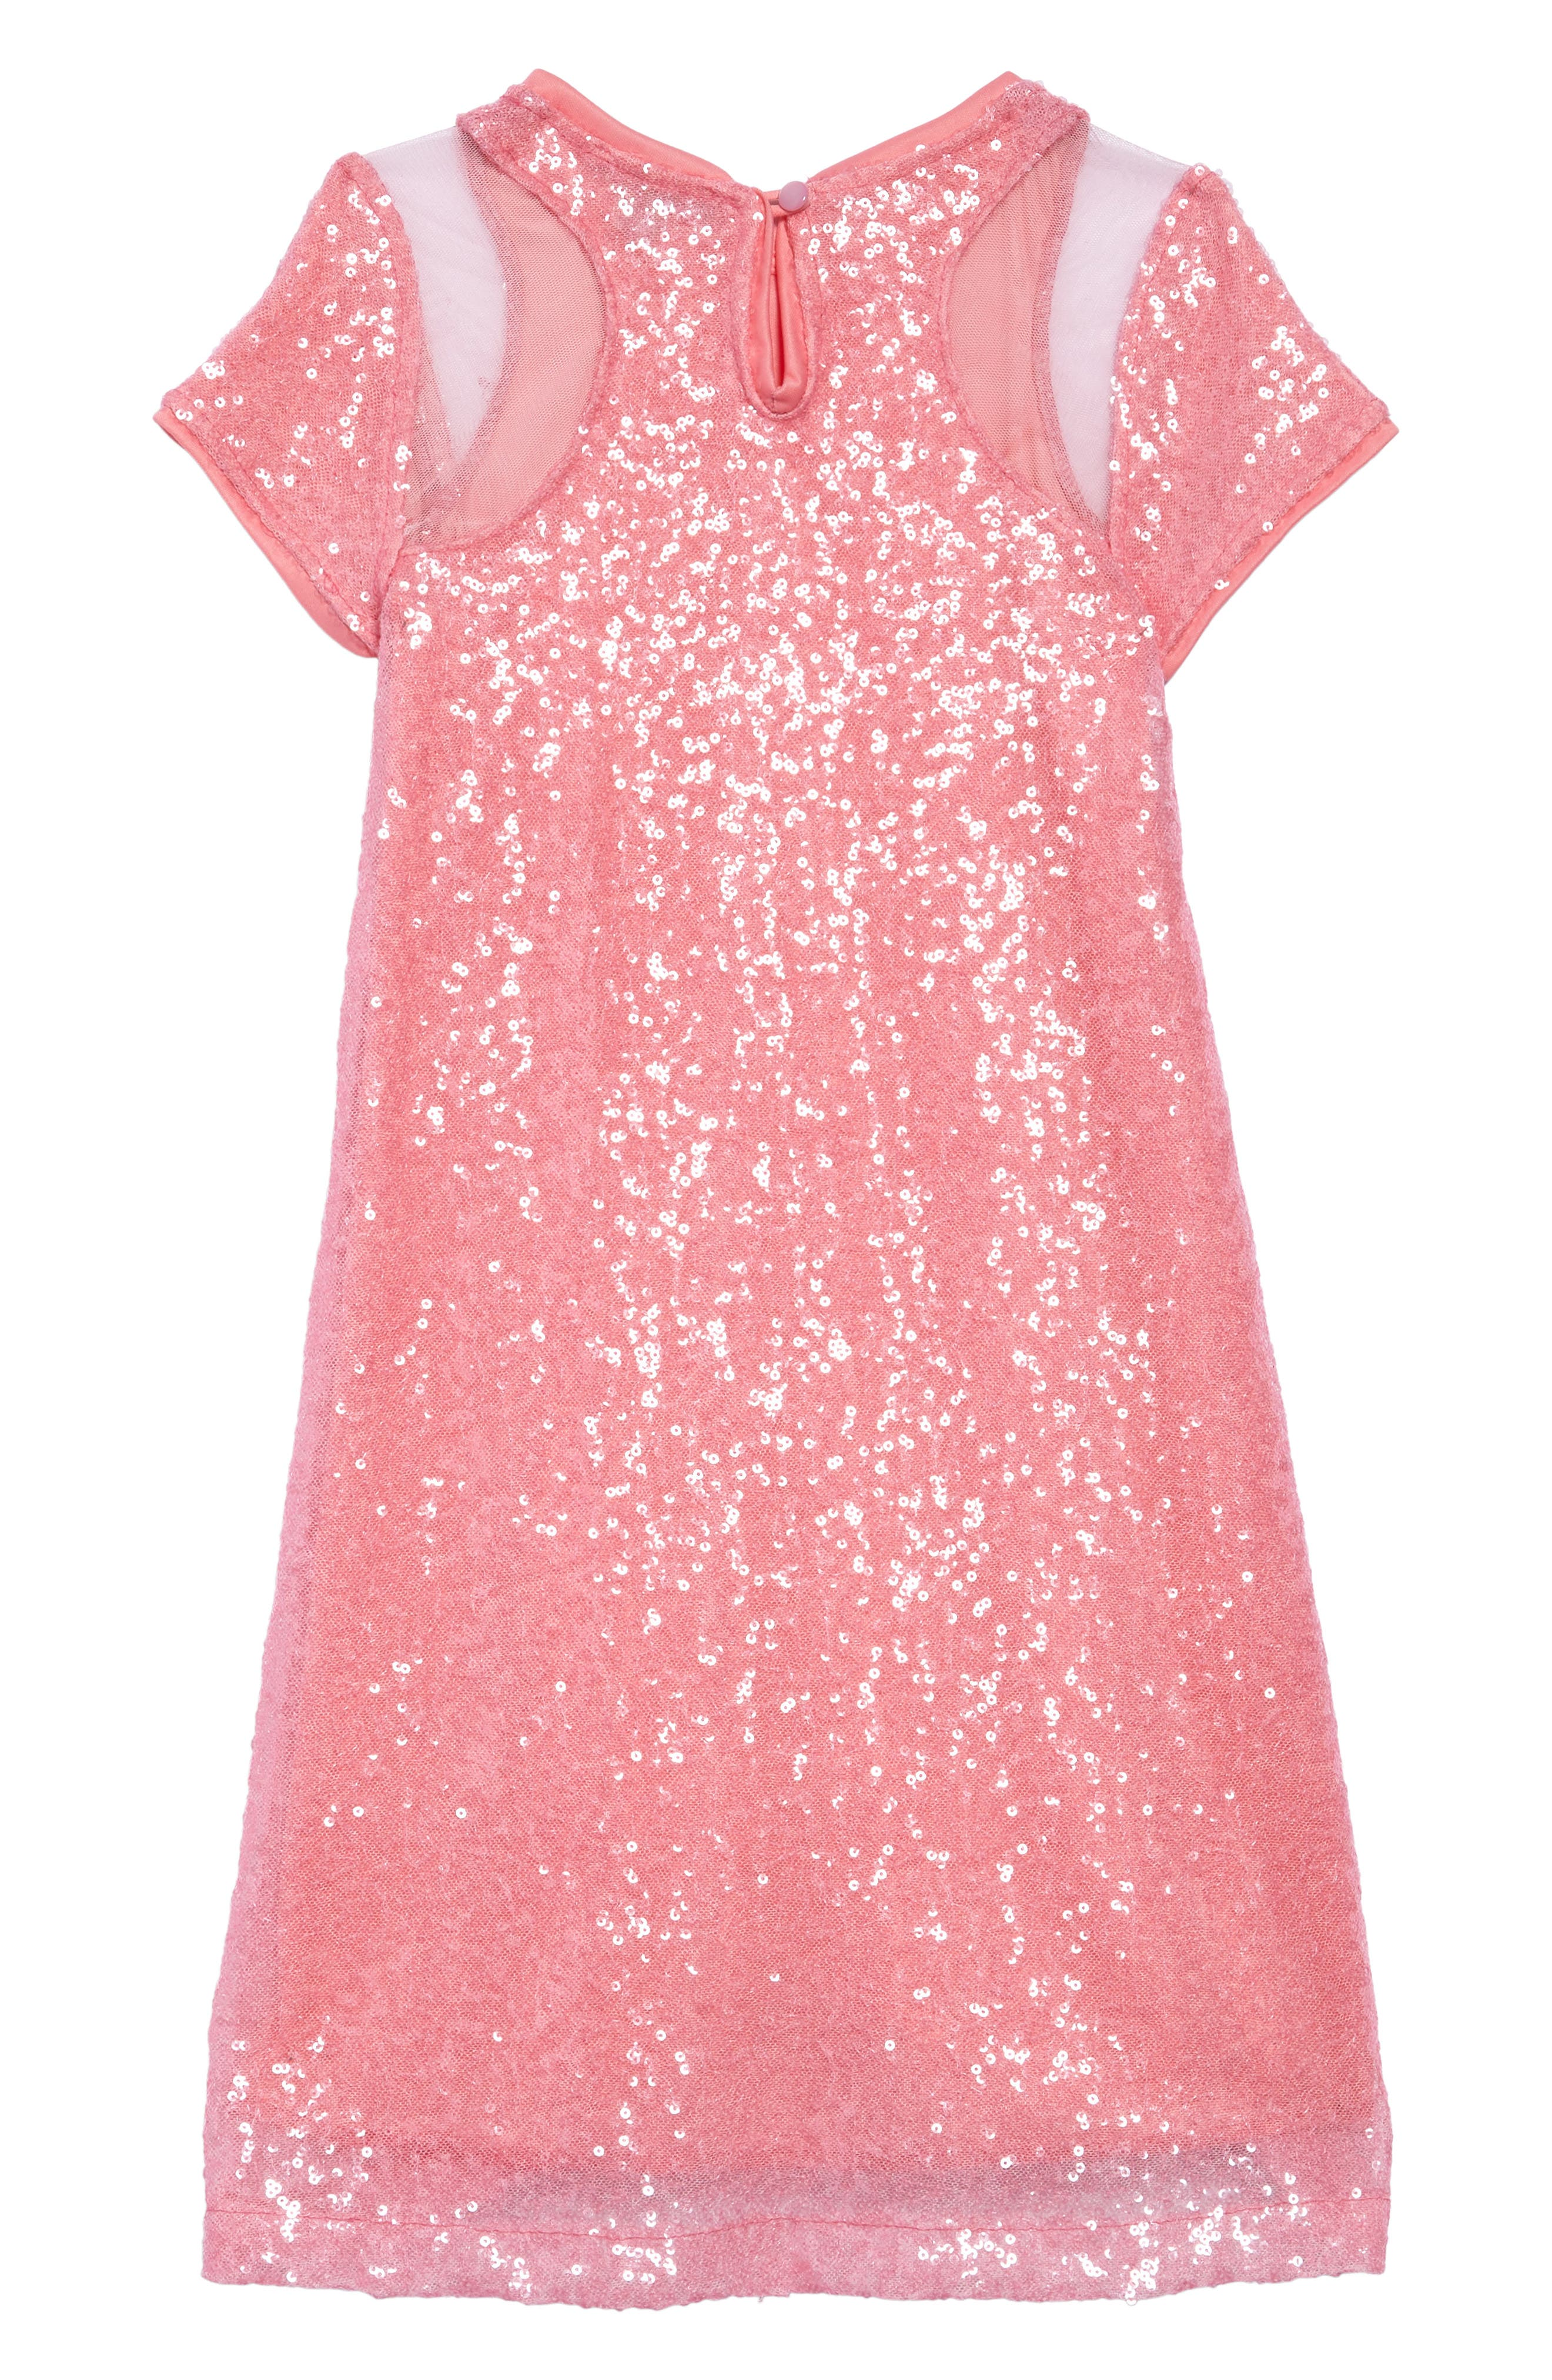 Daisy Sequin Shift Dress,                             Alternate thumbnail 2, color,                             Pink